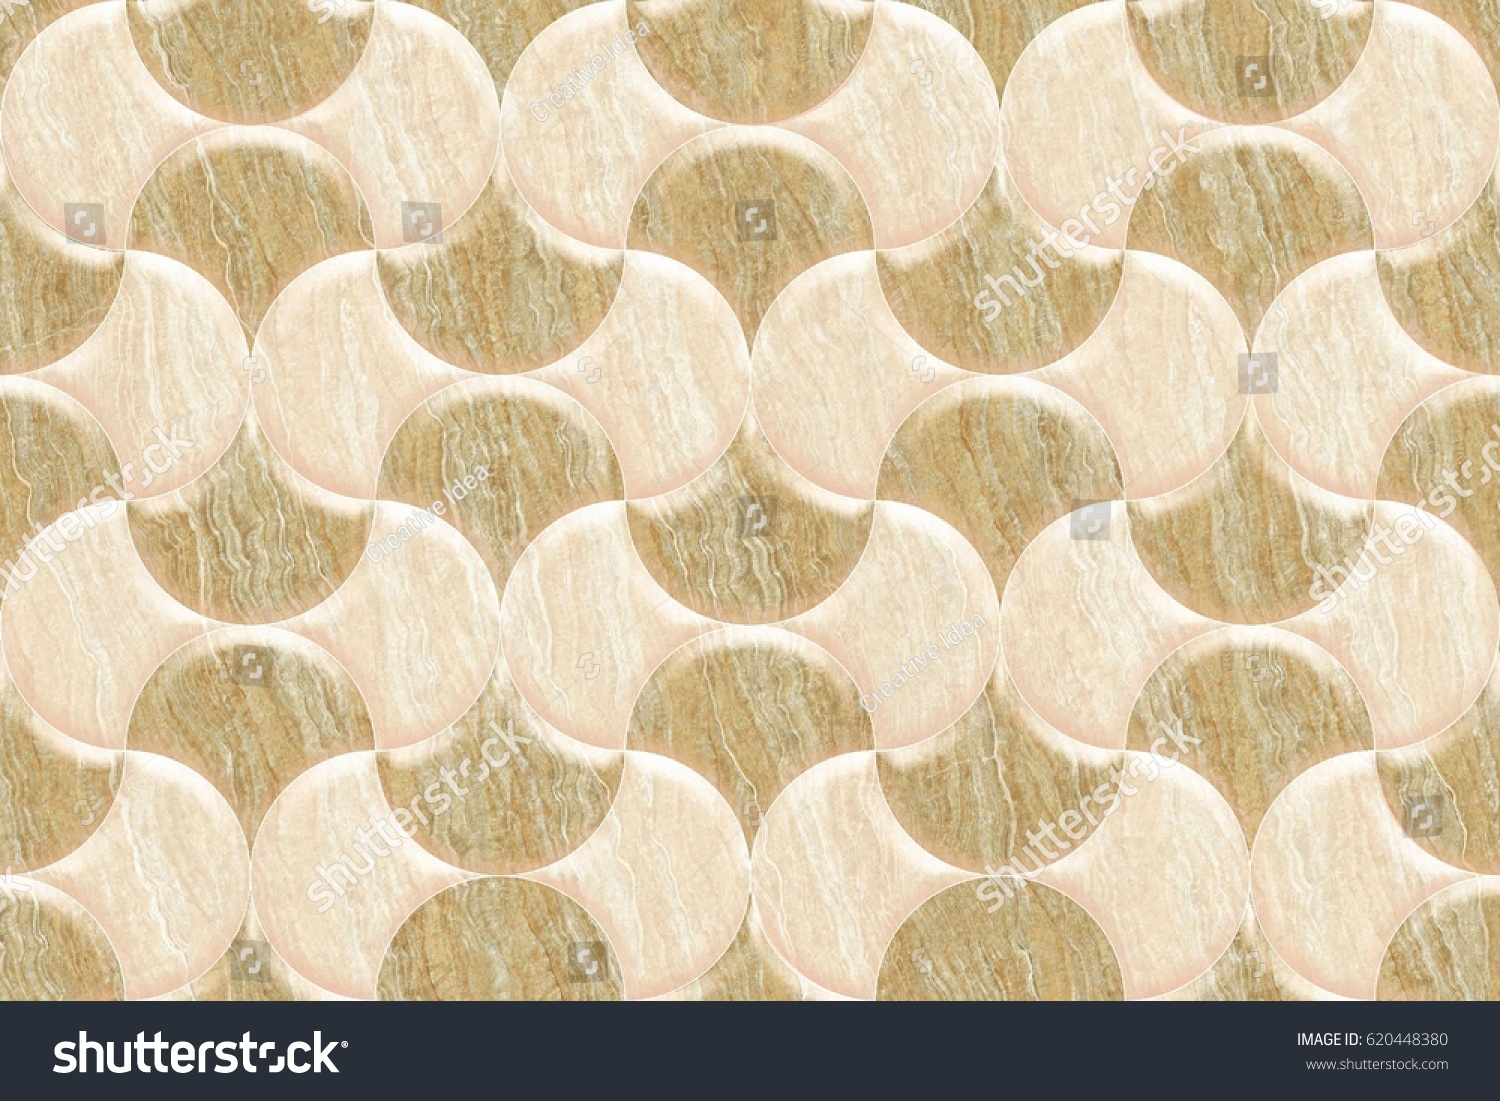 Abstract Home Decorative Wall Tiles Marble Stock Illustration ...